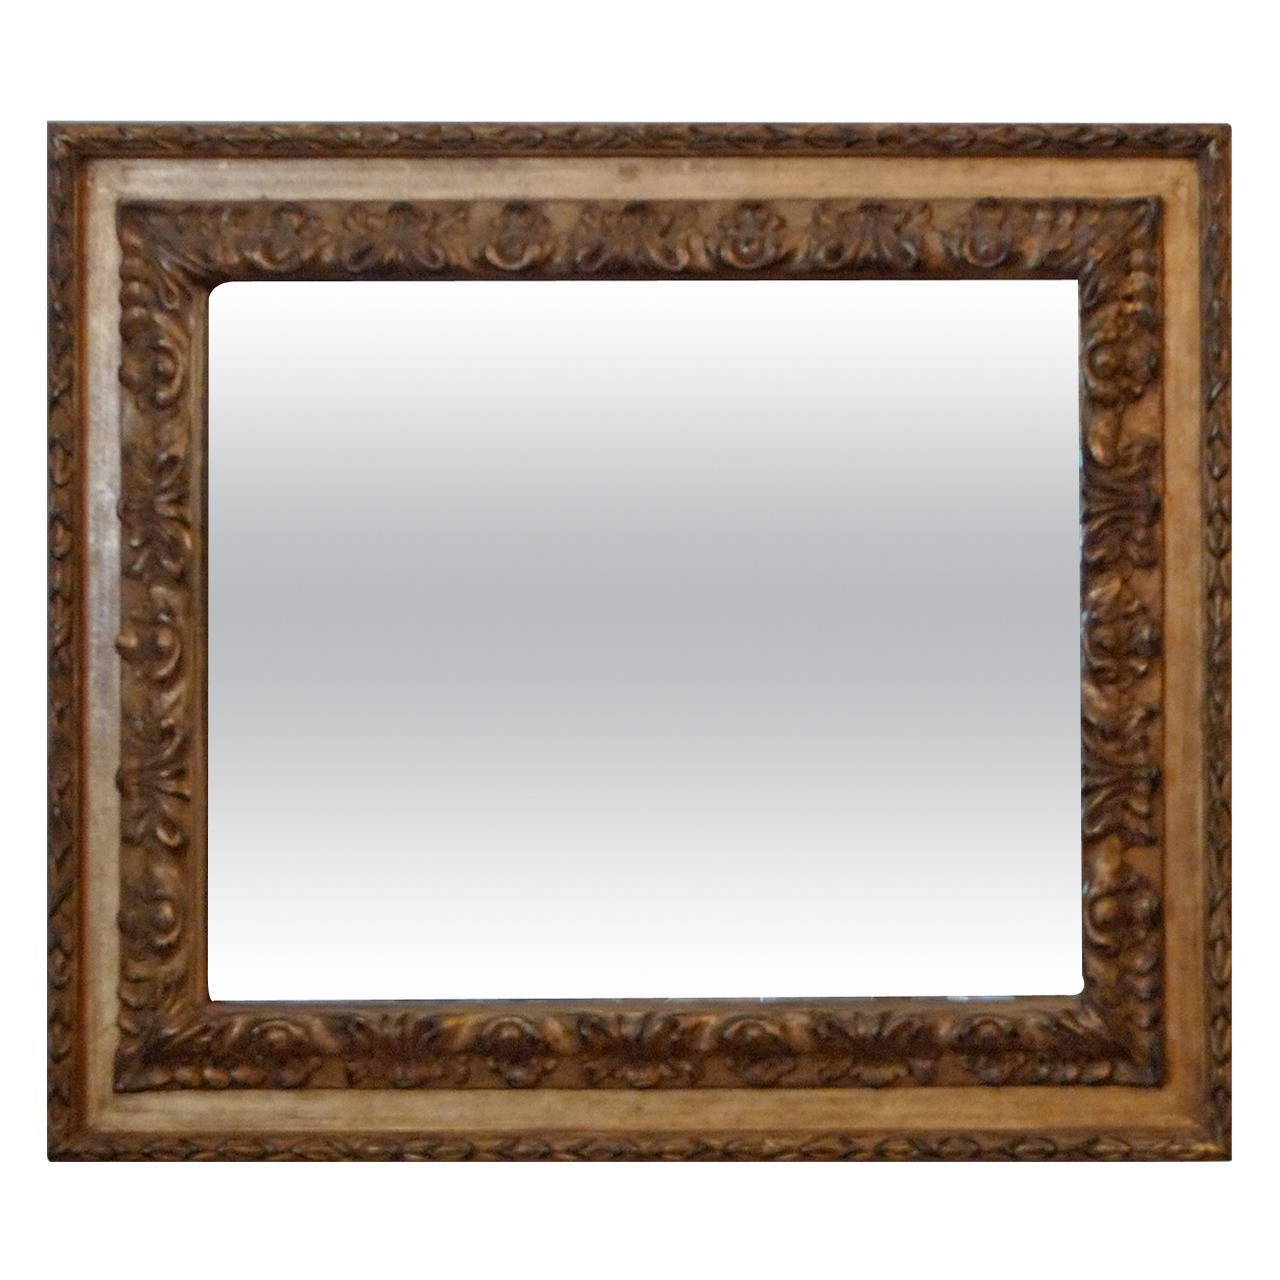 French wood carved gold leaf mirror at 1stdibs